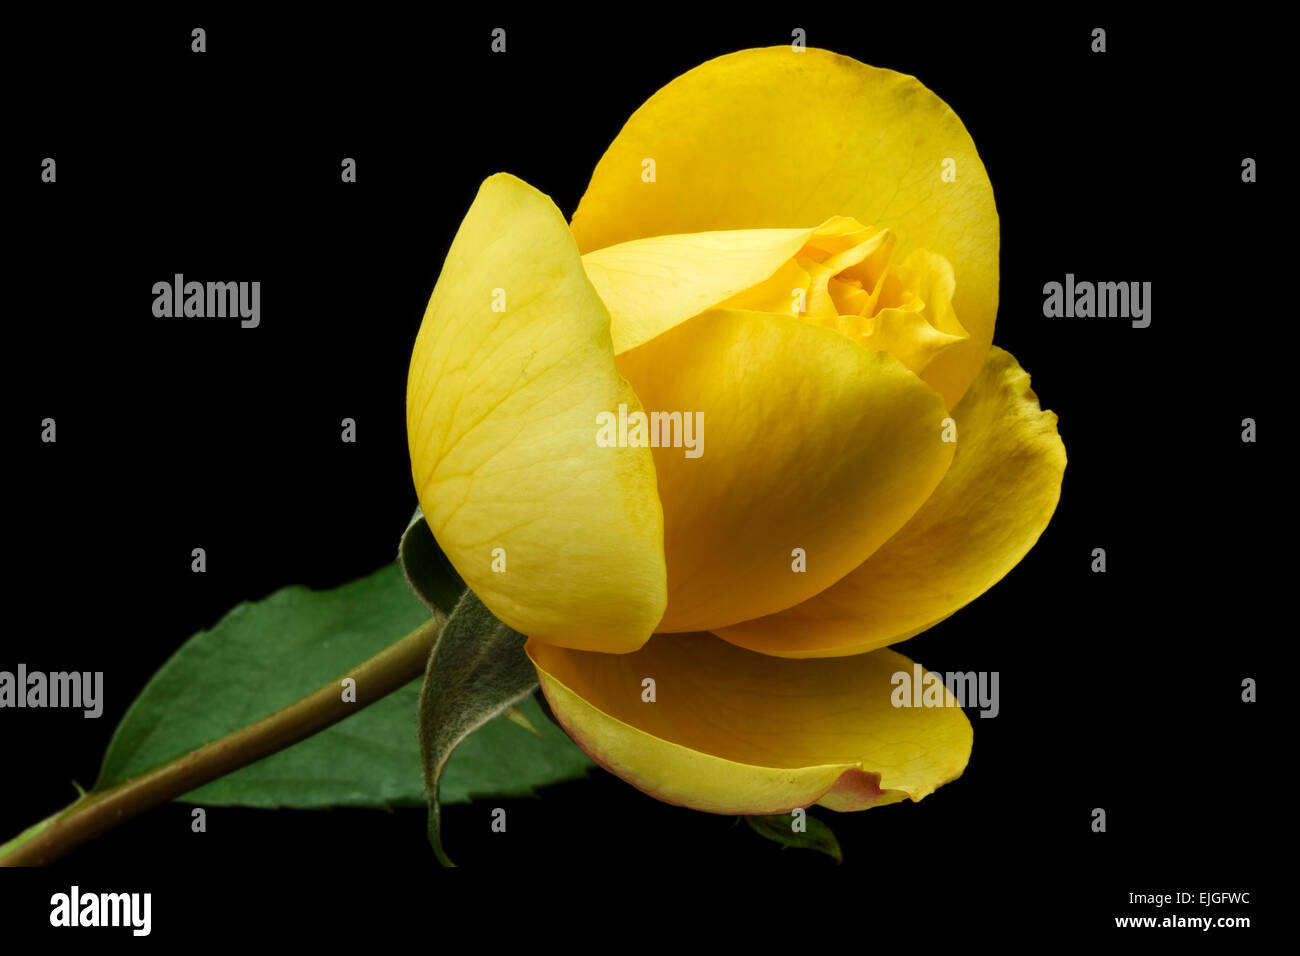 Yellow Rose on a black background - Stock Image